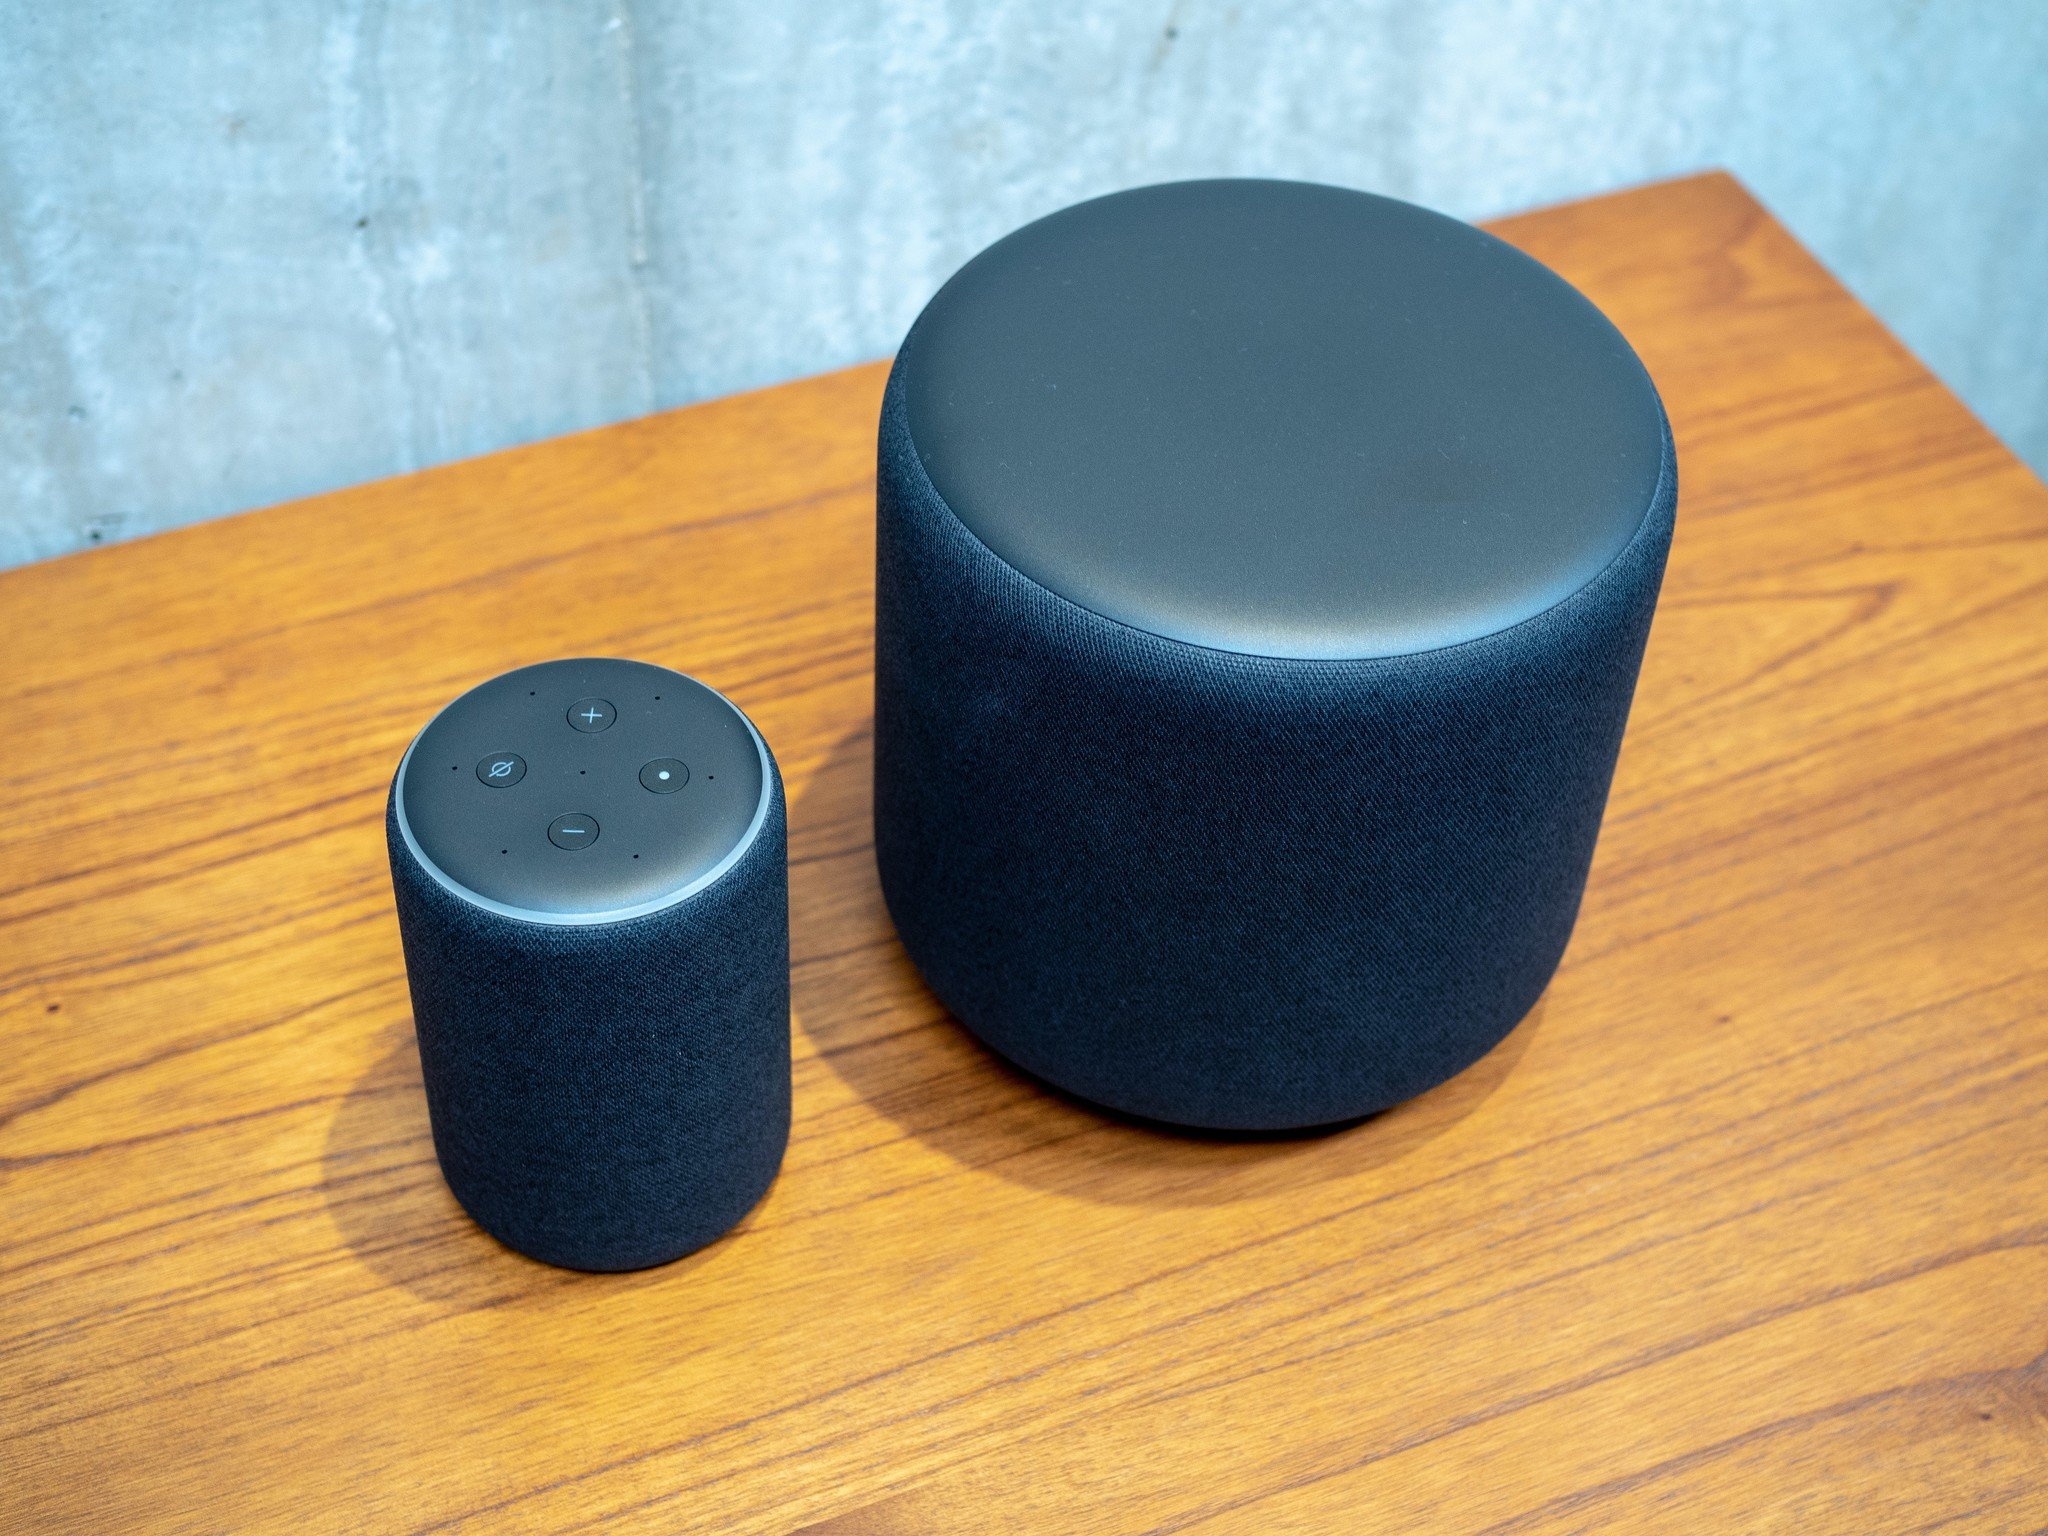 Amazon Music Sonos Which Smart Speakers Work With Amazon Music Unlimited Android